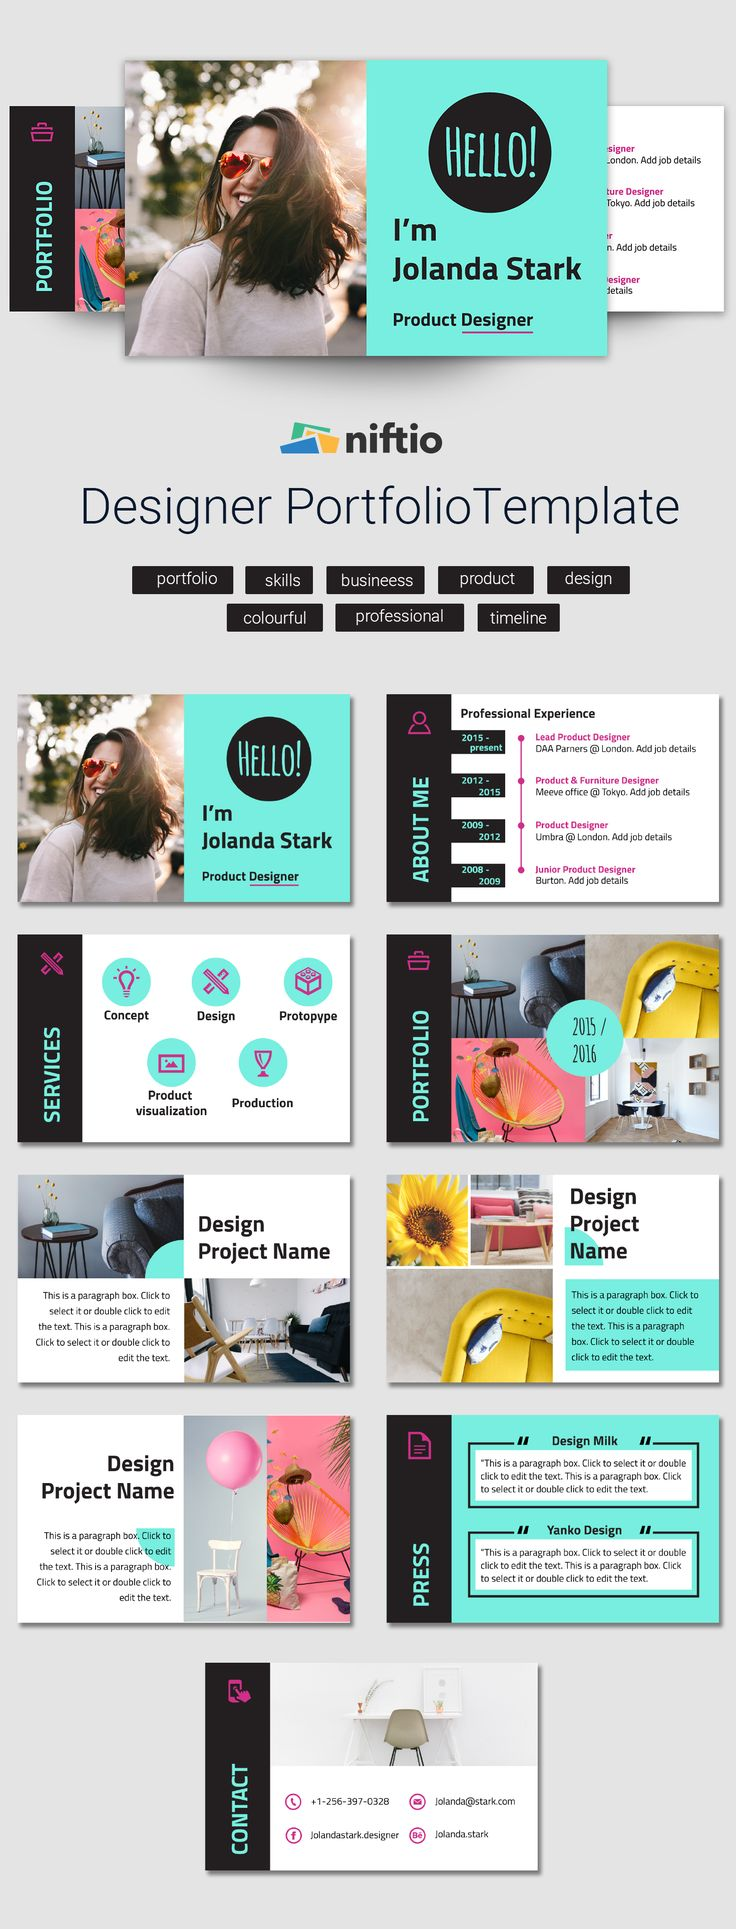 23 best business presentation templates images on pinterest, Presentation templates